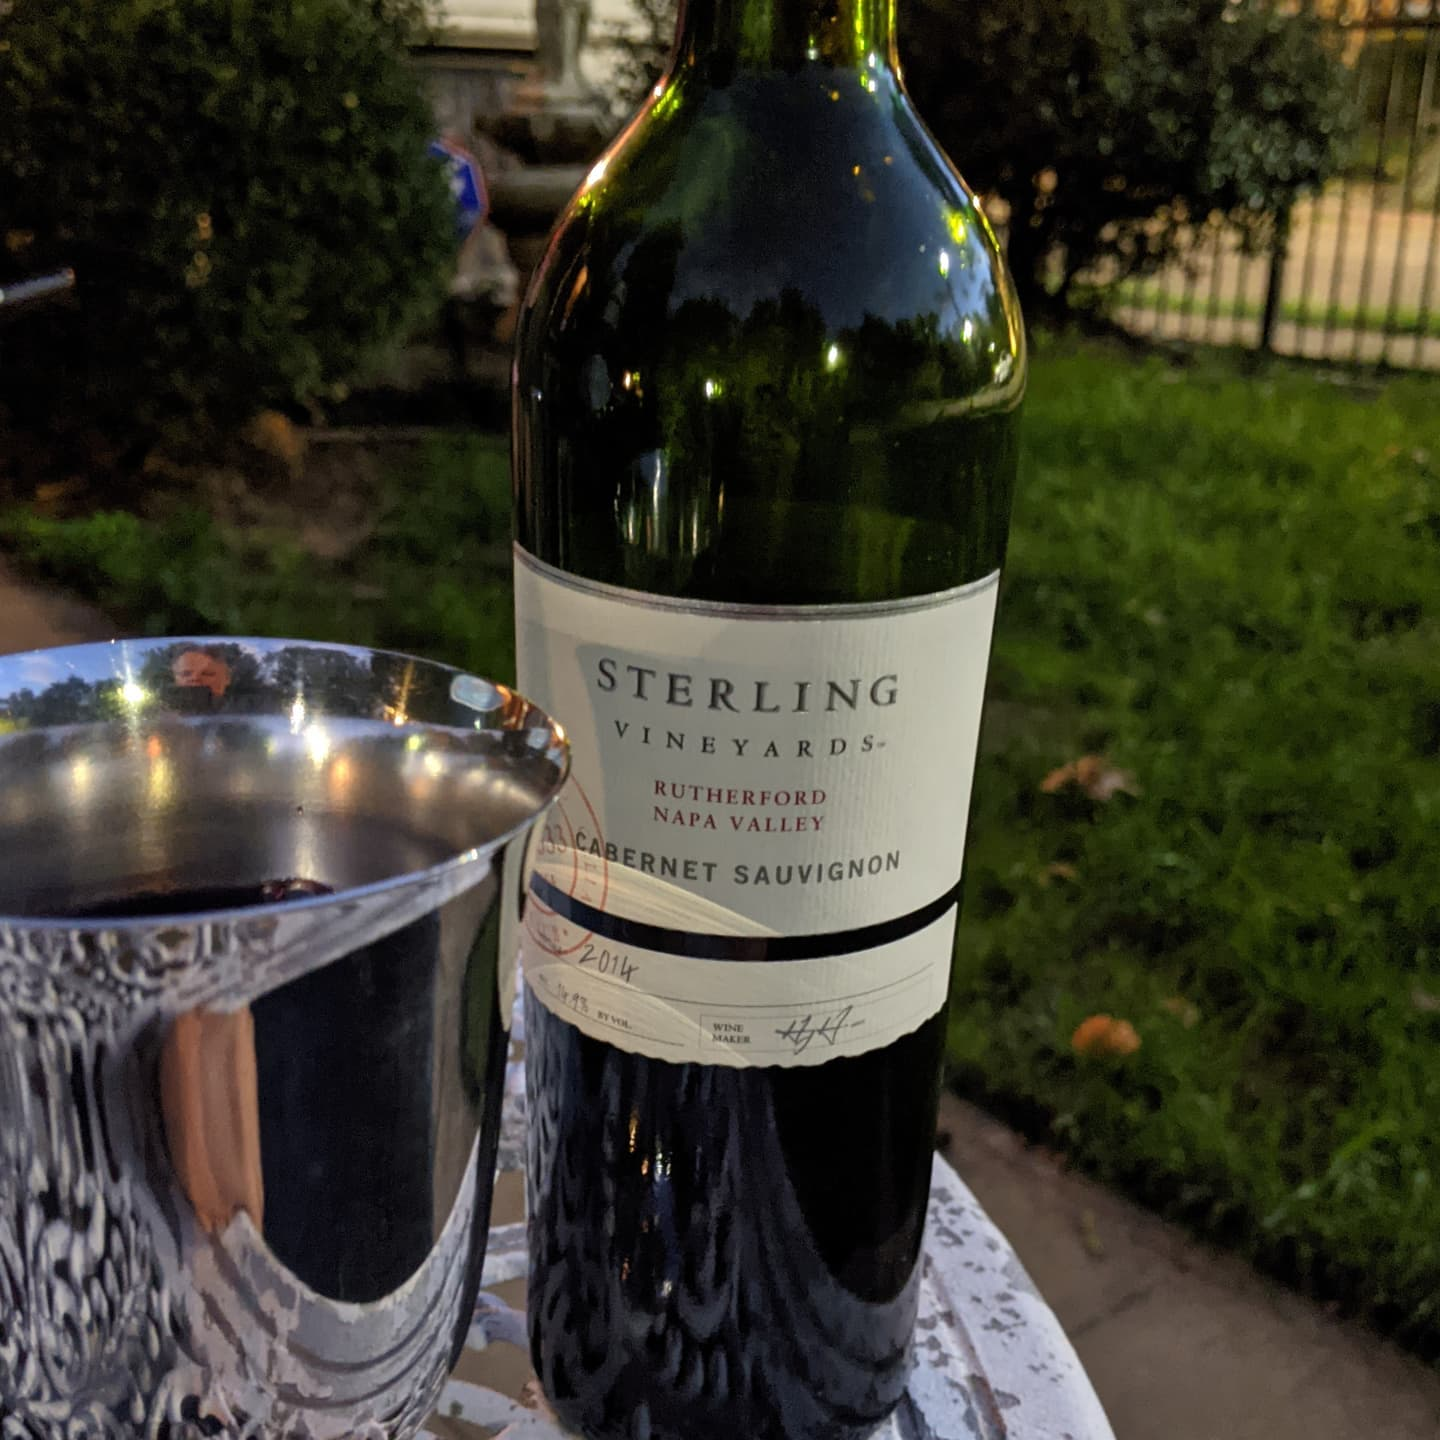 I have to travel again tomorrow, so for tonight it's a 2014 Sterling Rutherford Cabernet outside with the pups playing. #citylife #sterlingvineyards #thegoodlife